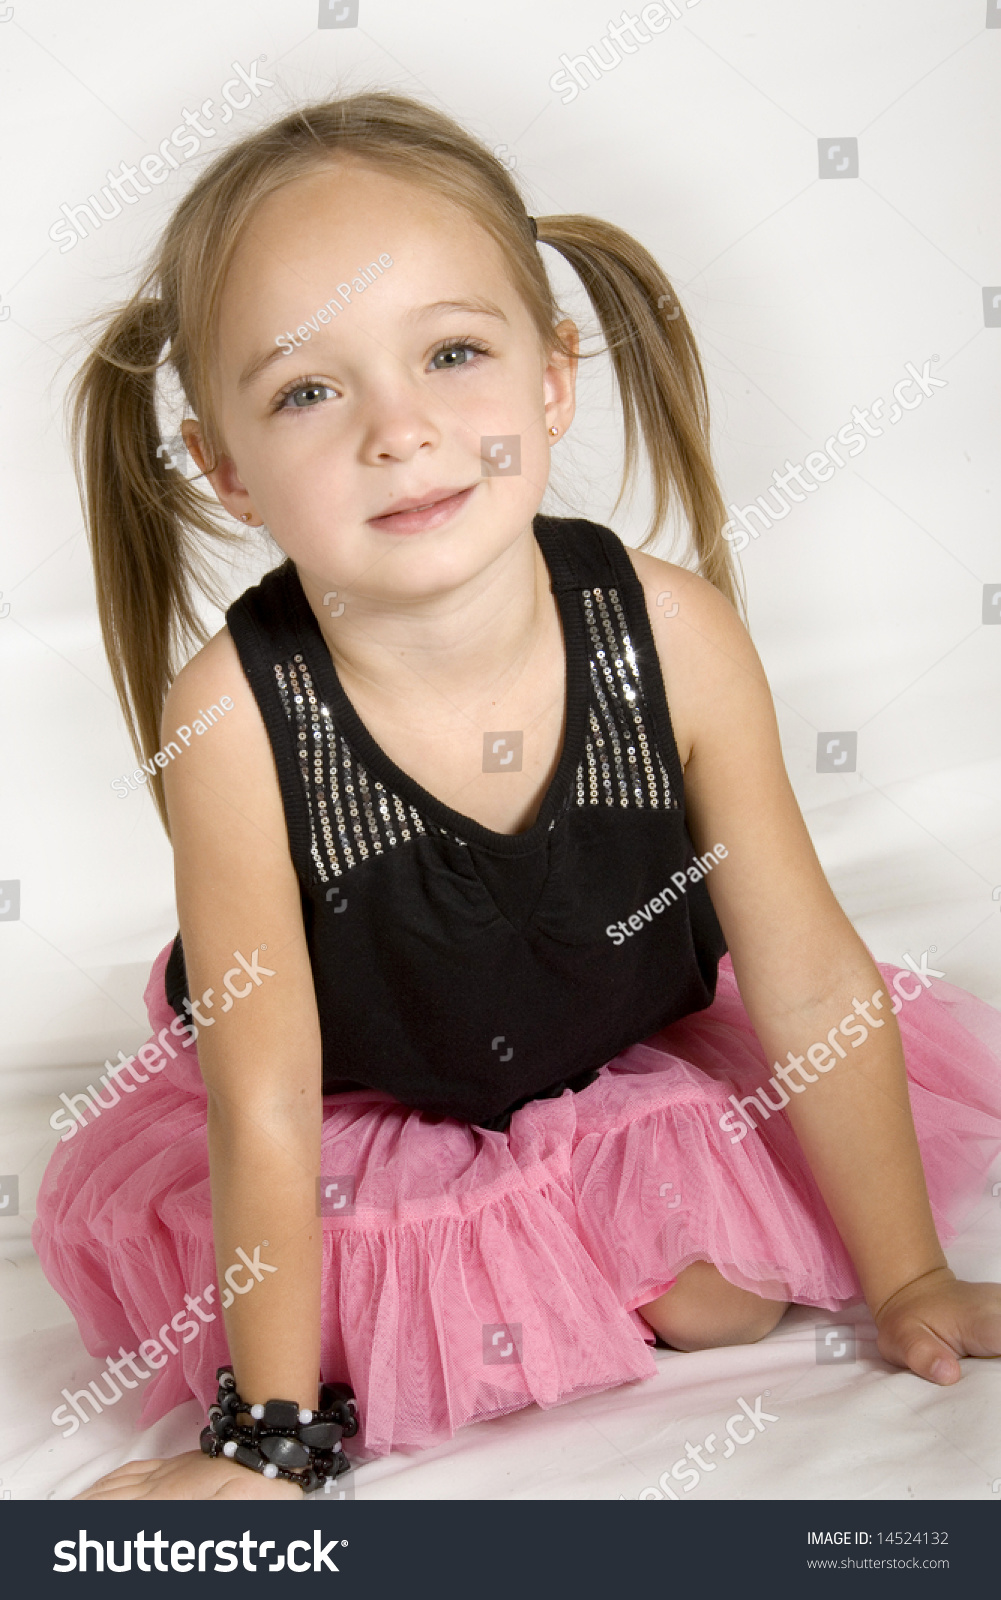 Cute Stock Photography: Very Cute Little Girl Stock Photo 14524132